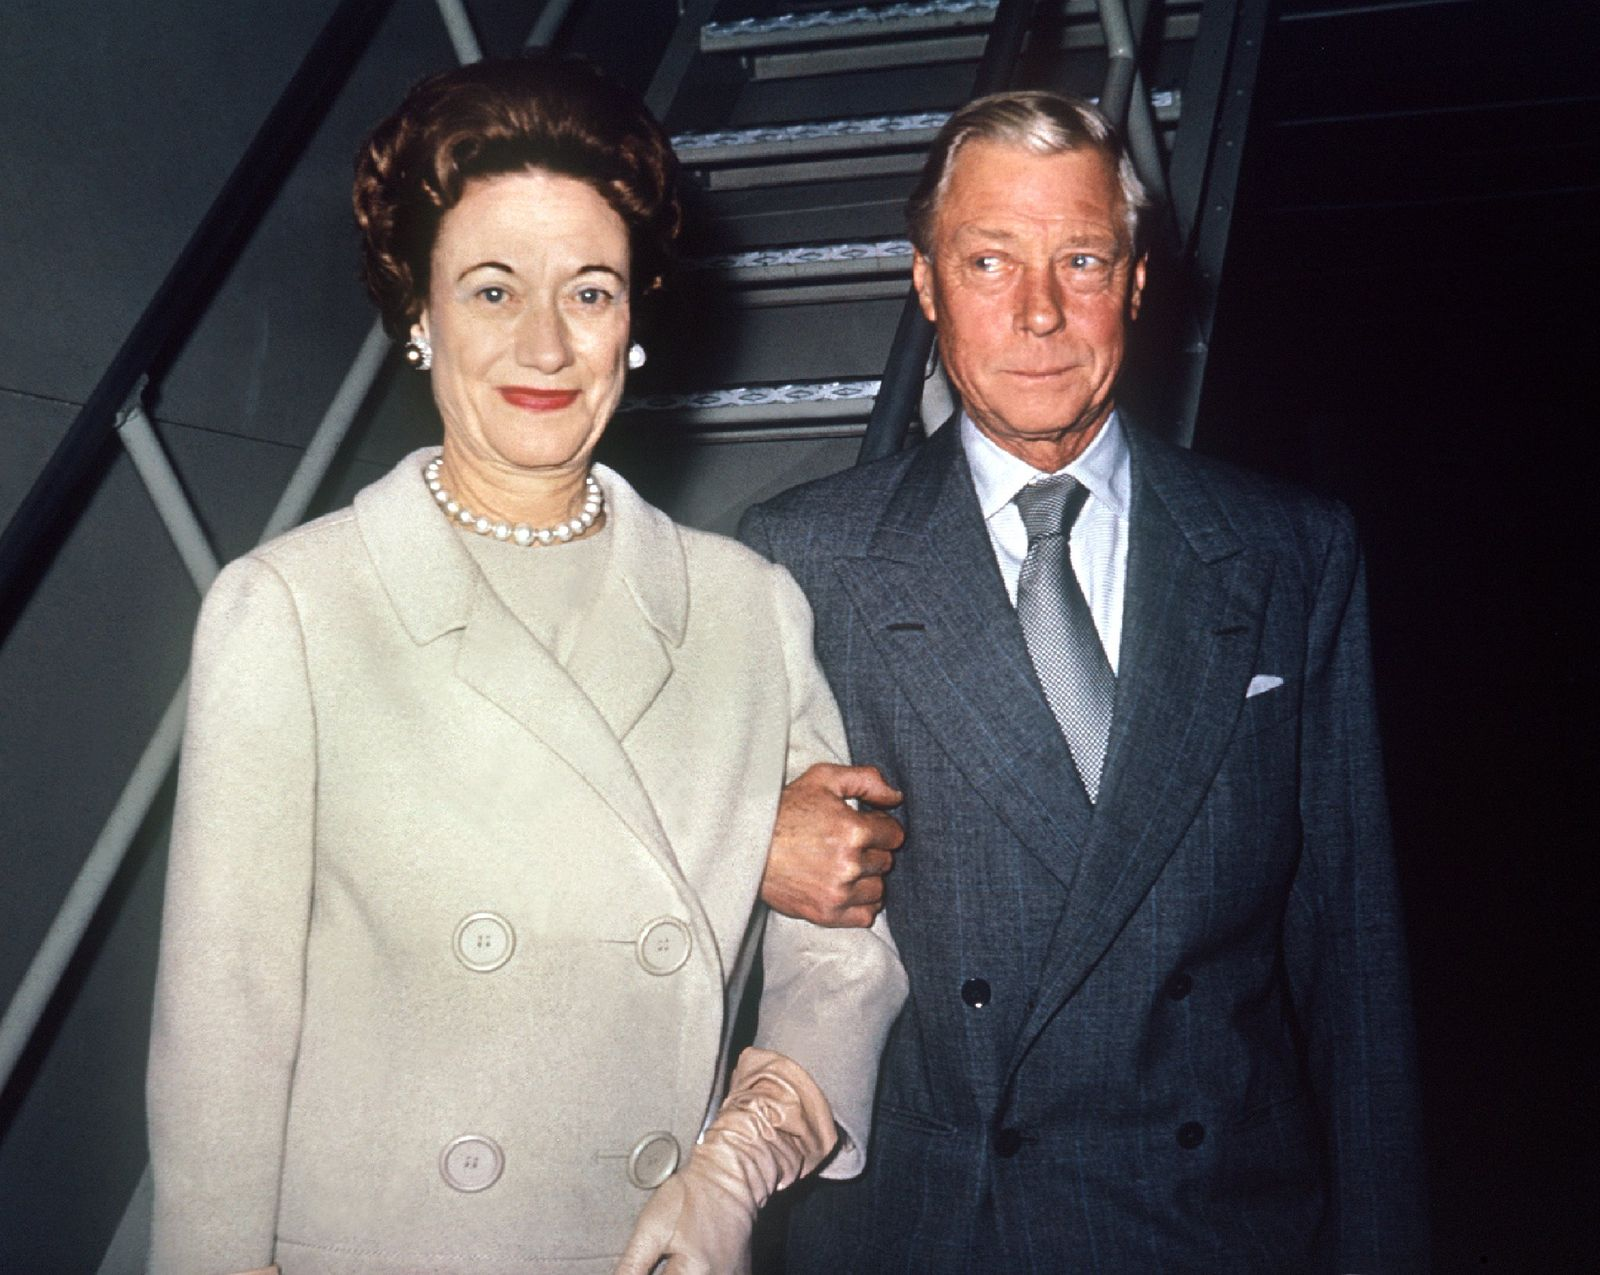 Edward VIII / Wallis Simpson